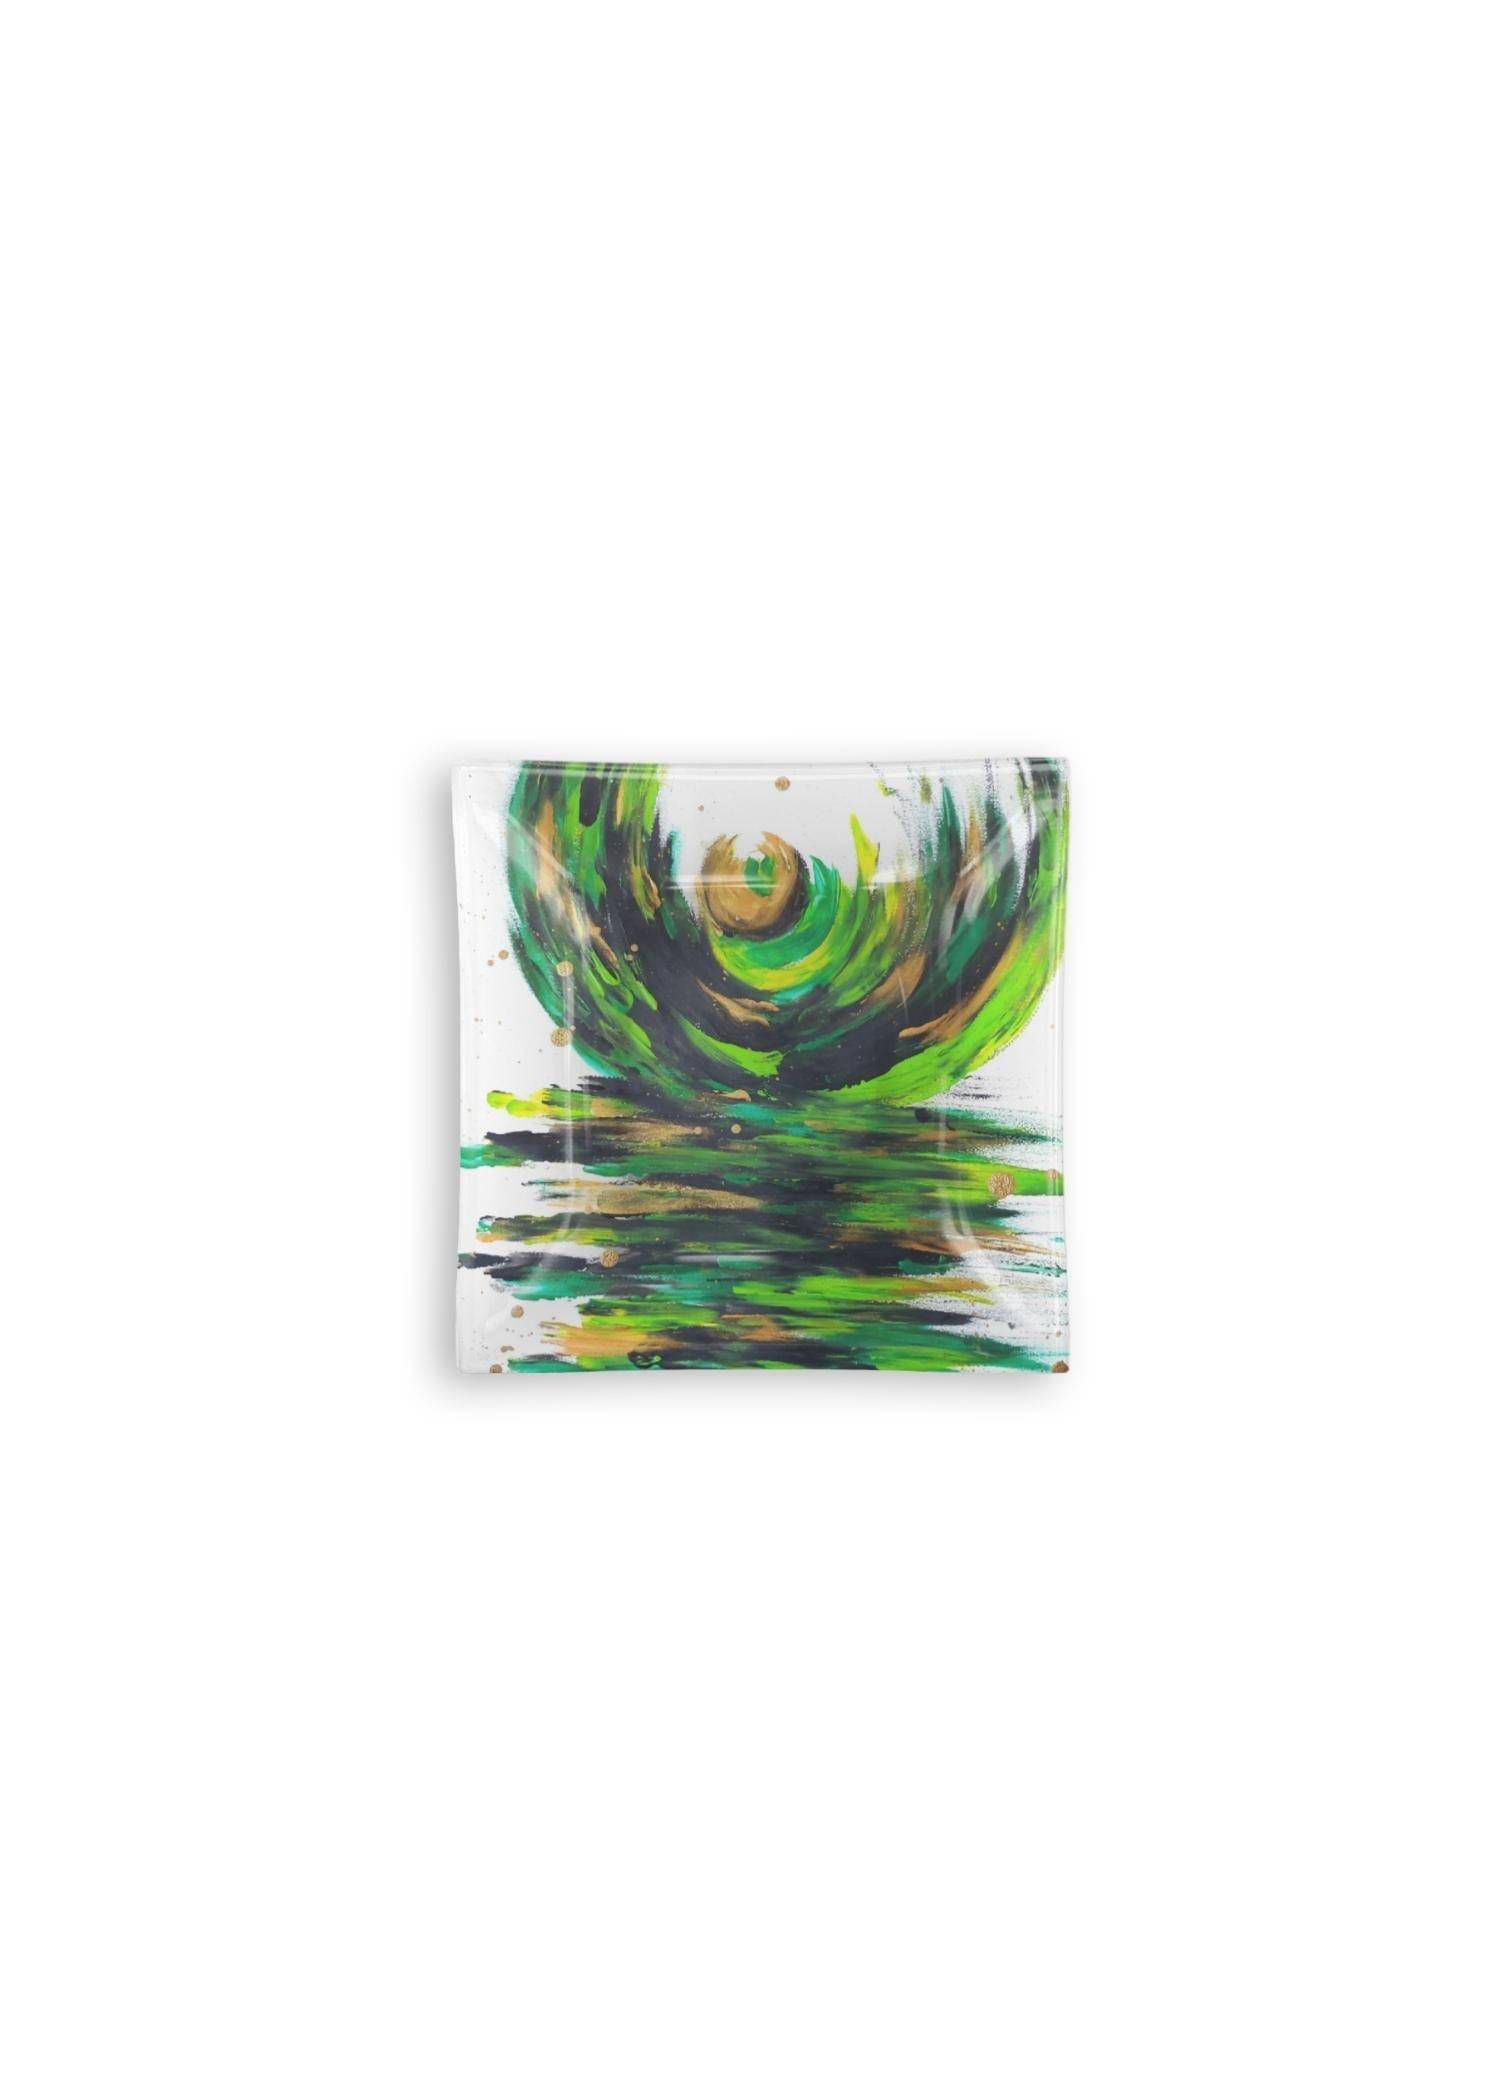 VIDA Square Glass Tray - Love Sees No Boundaries in Green/White/Yellow by VIDA Original Artist  - Size: Large